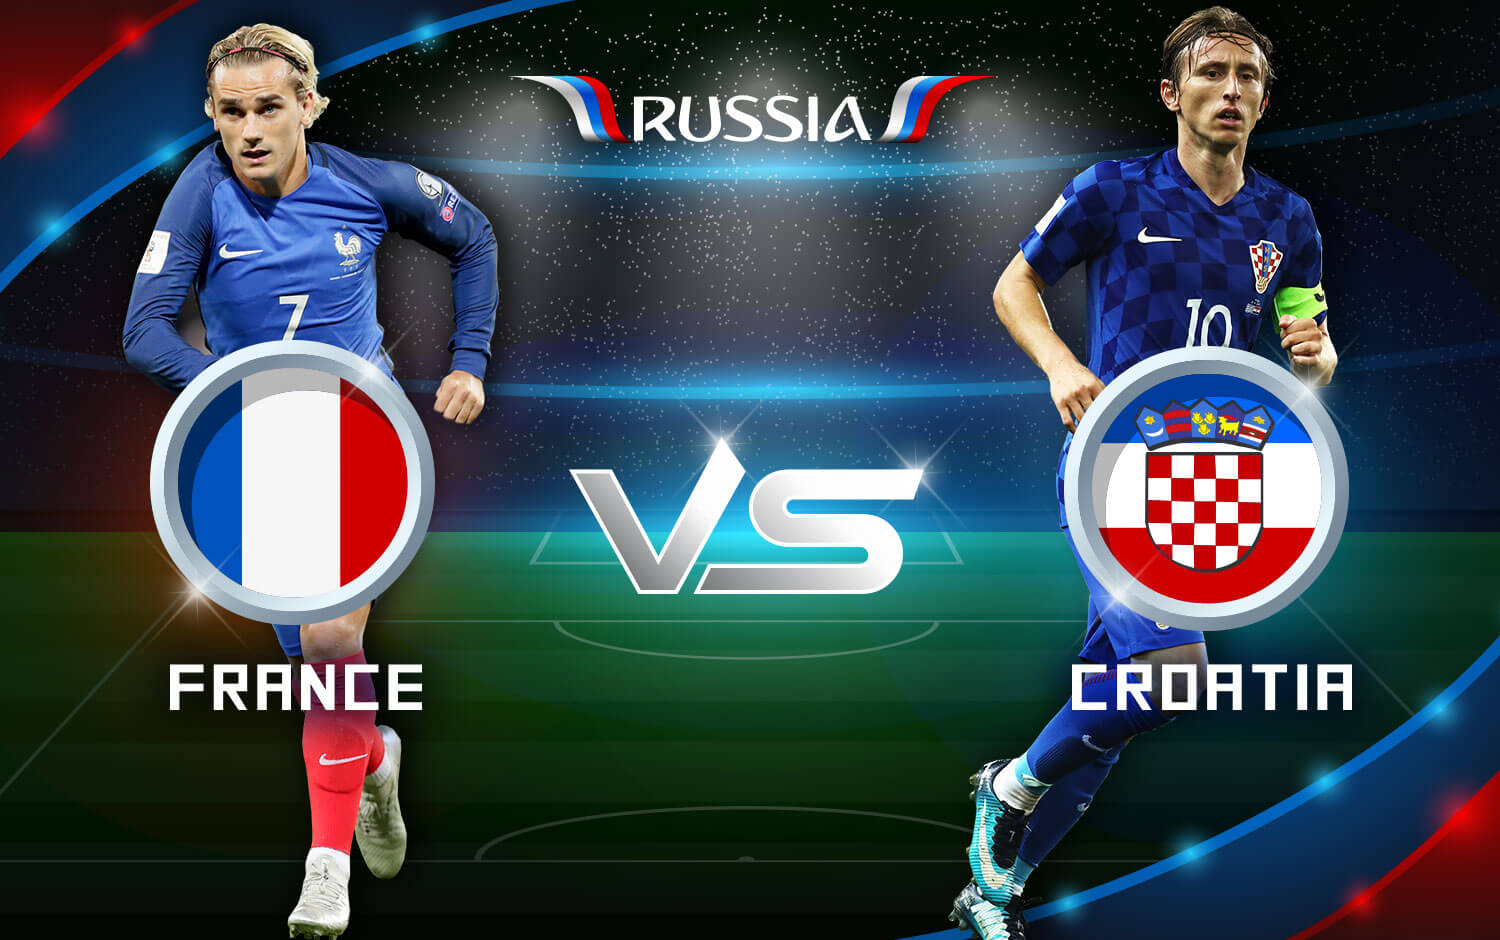 France vs Croatia at Luzhniki Stadium, Moscow - Russia, 2018 FIFA World Cup.